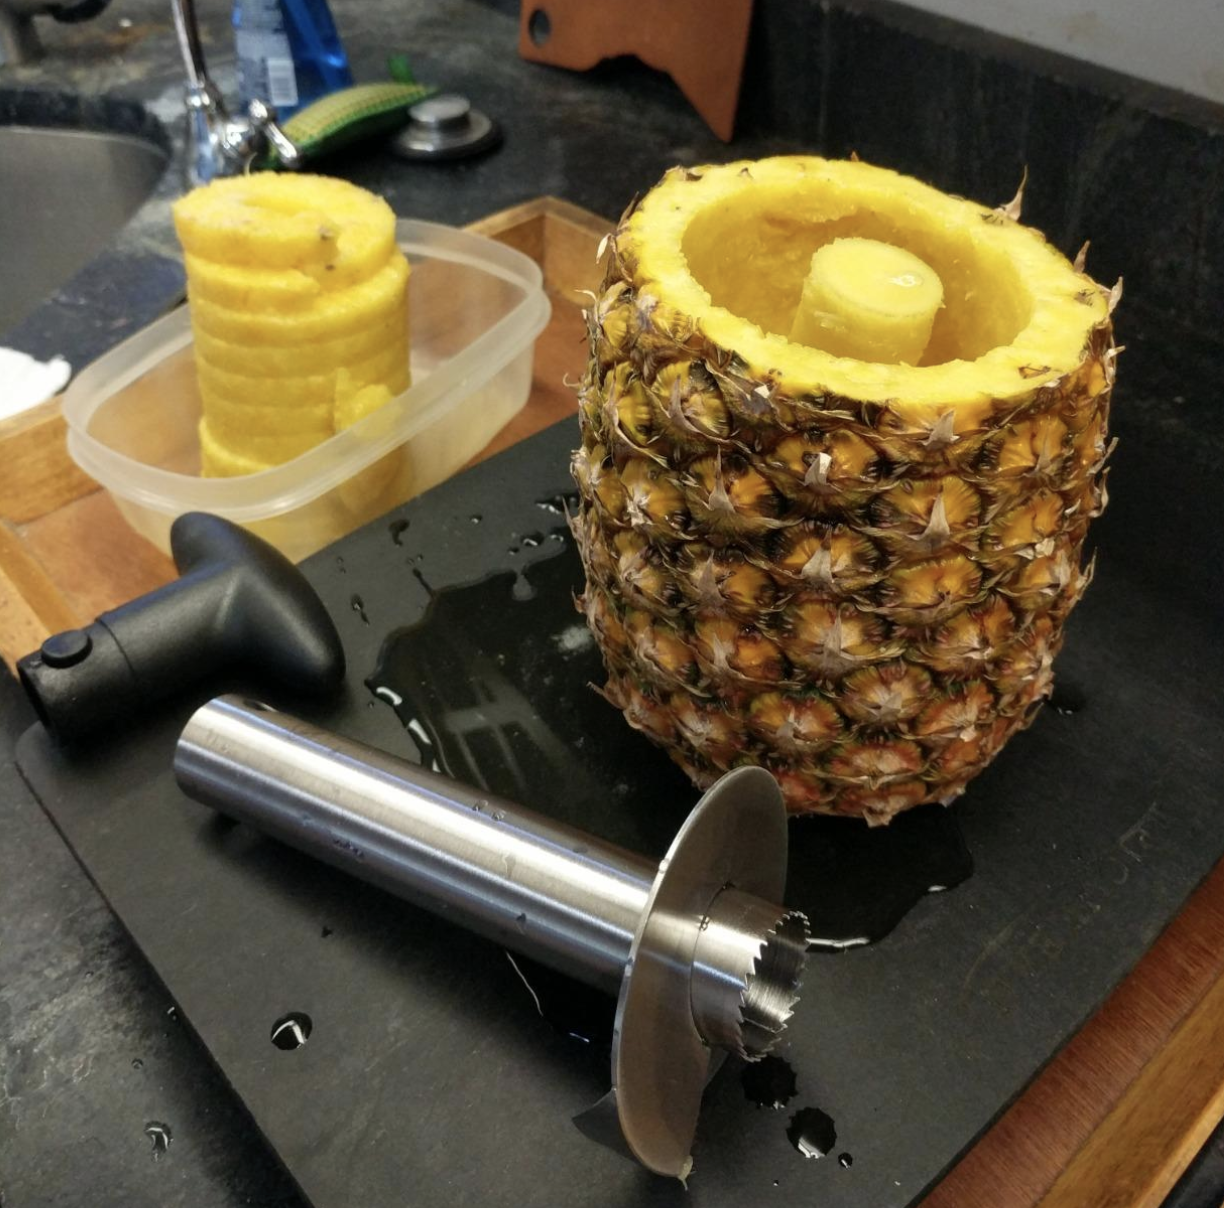 Reviewer's photo of the stainless-steel corer next to an empty pineapple with slices next to it